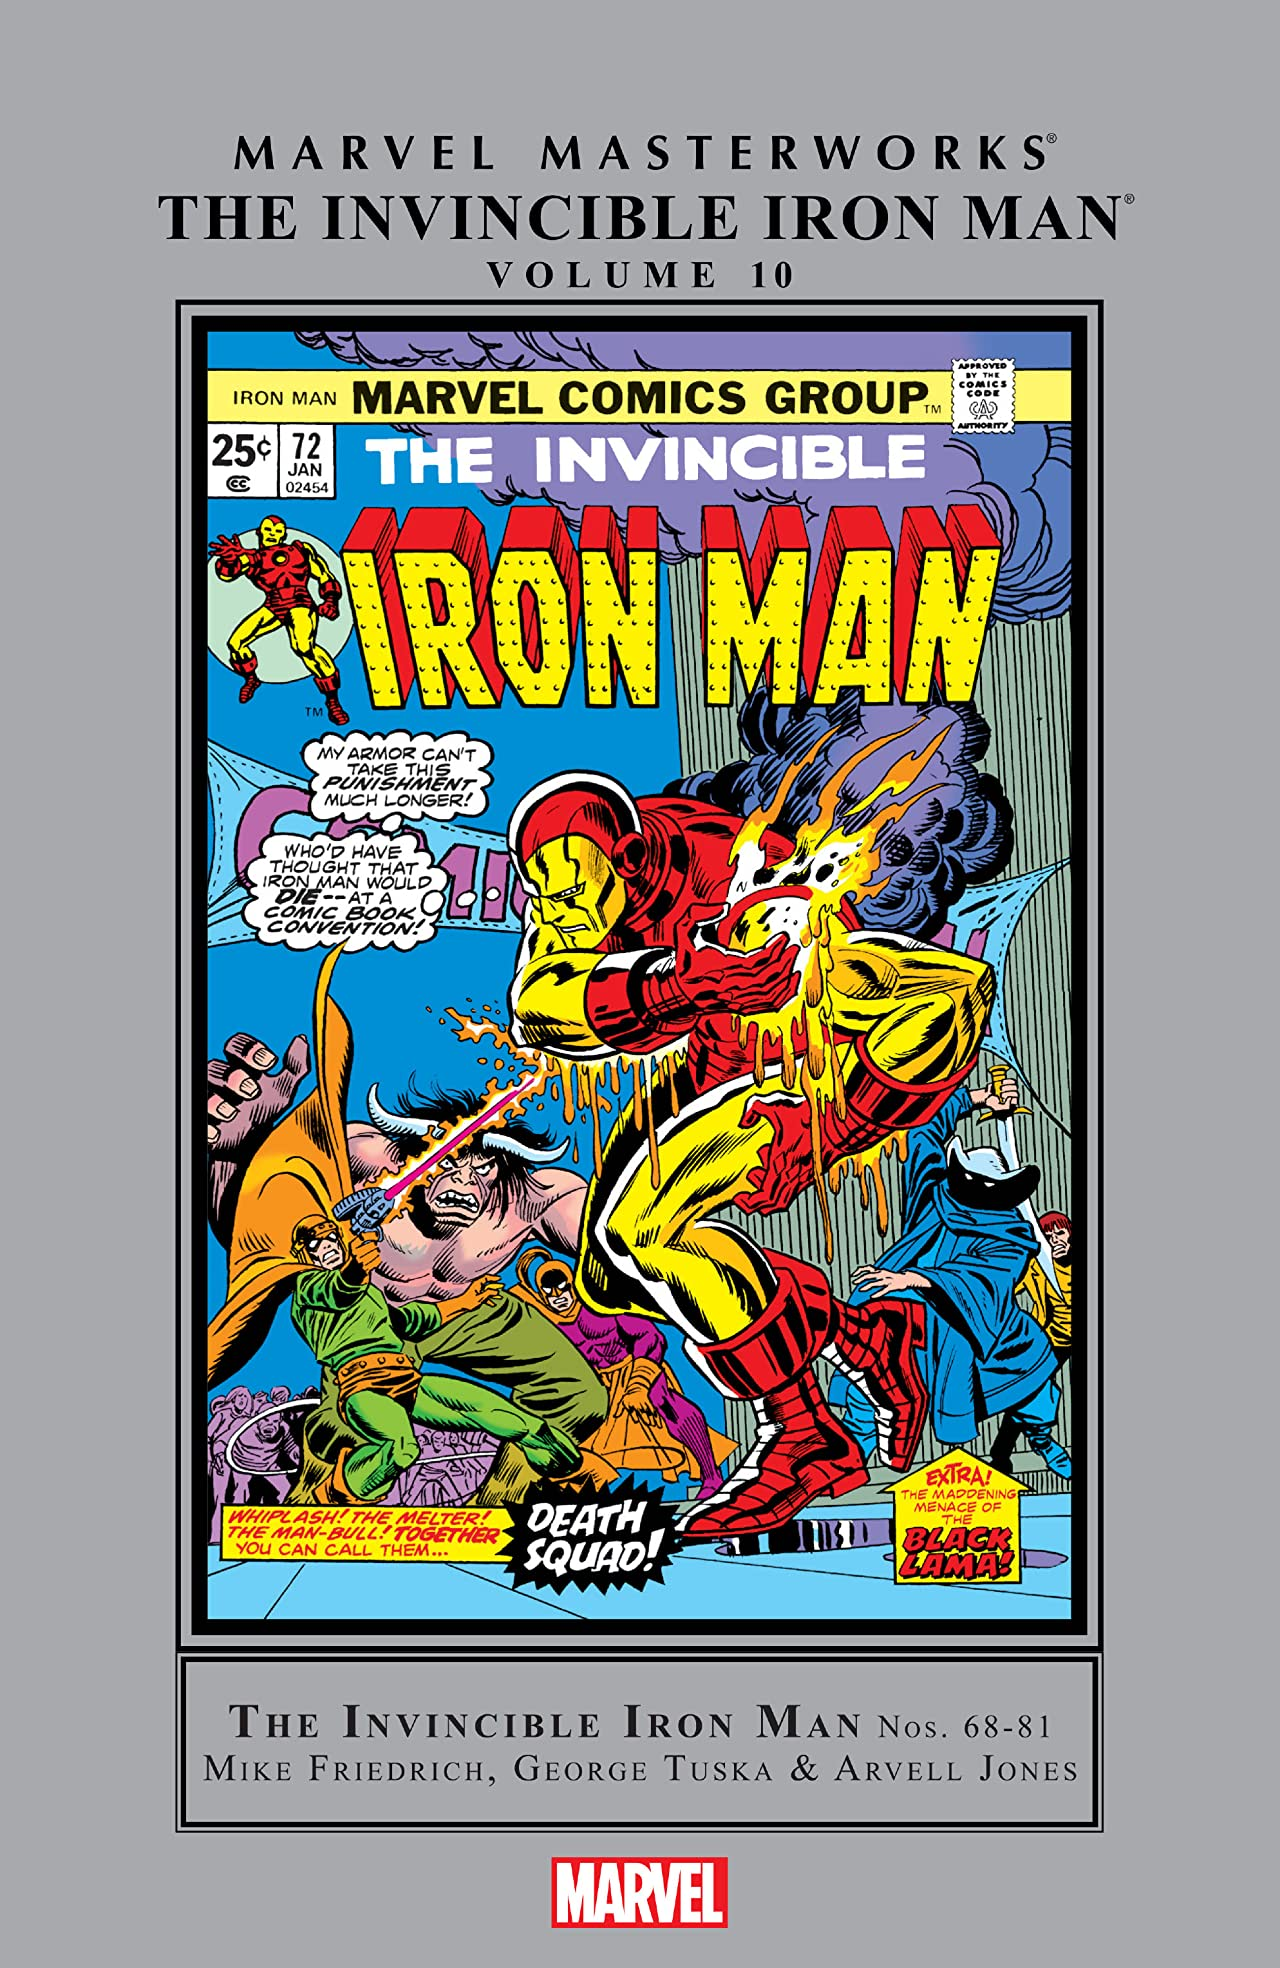 Iron Man Masterworks Vol. 10